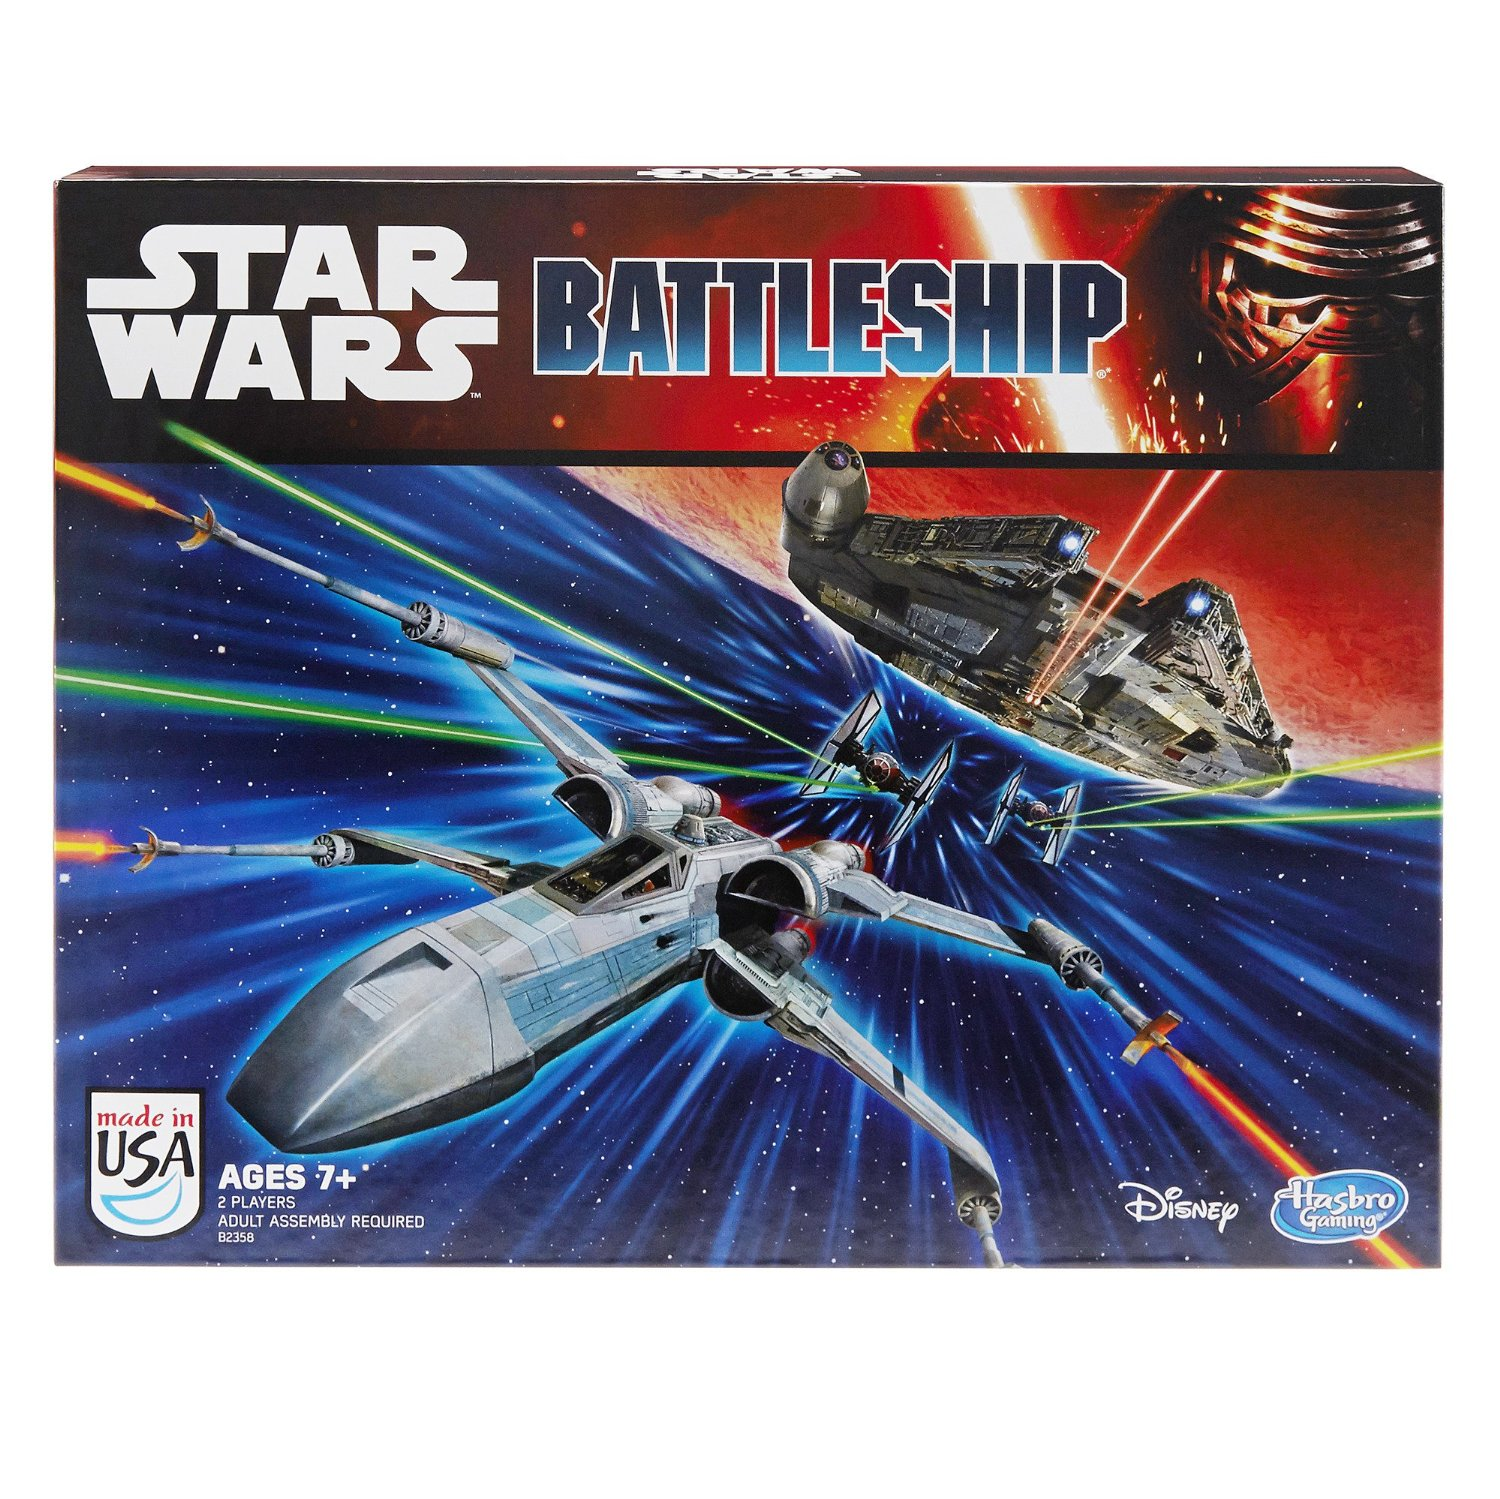 Battleship Star Wars Gift